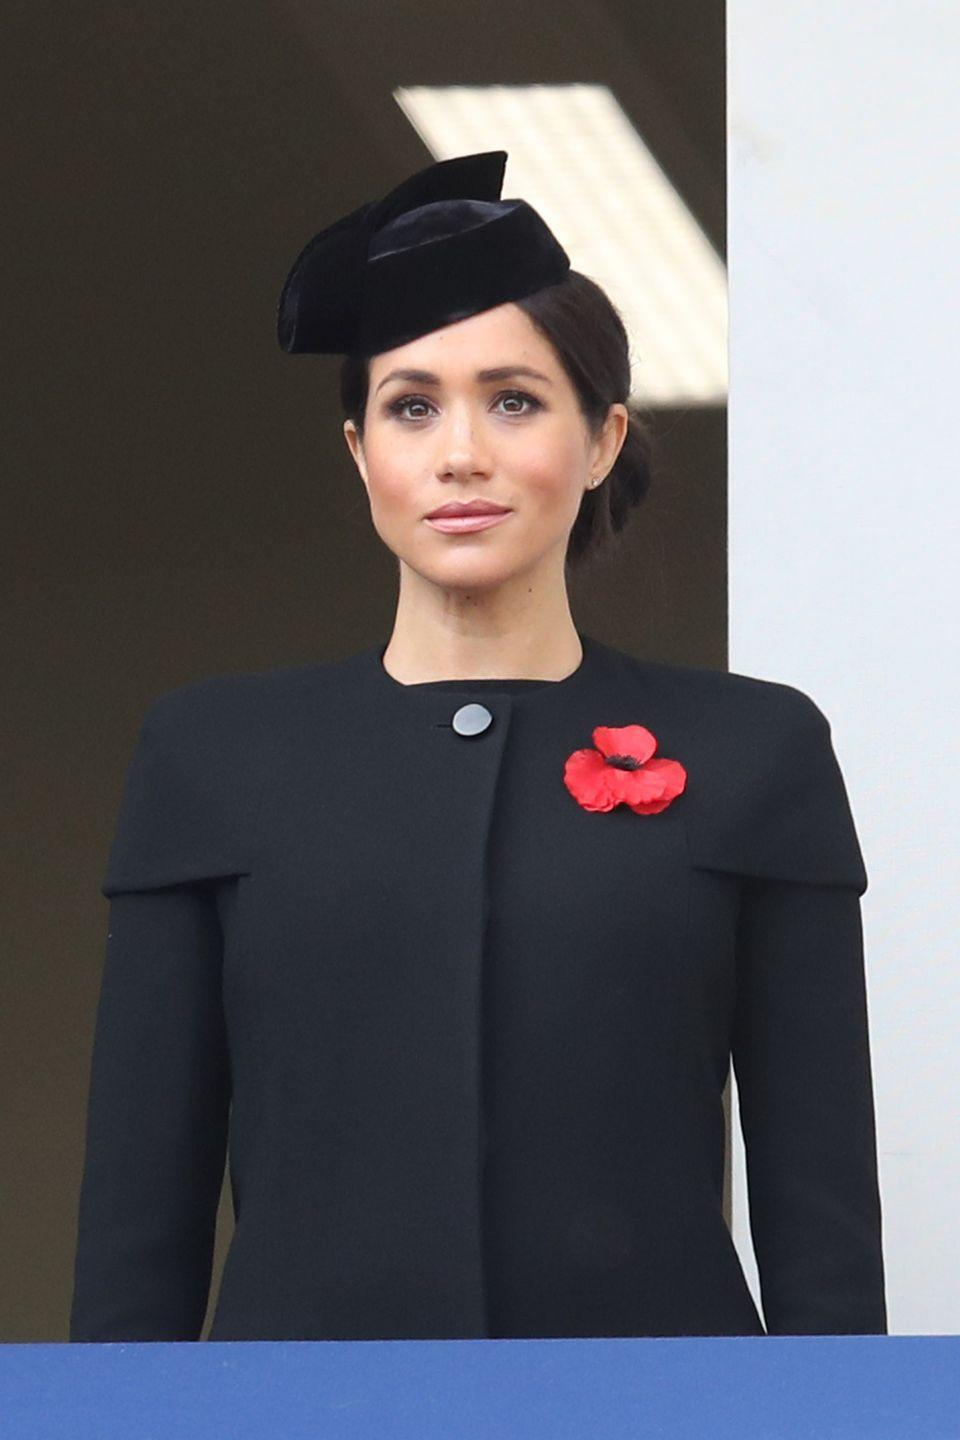 "<p>On Sunday, the royal family marked the <a href=""https://www.townandcountrymag.com/society/tradition/a24757664/prince-harry-field-of-remembrance-westminster-abbey-photos-2018/"" rel=""nofollow noopener"" target=""_blank"" data-ylk=""slk:Remembrance Day Service"" class=""link rapid-noclick-resp"">Remembrance Day Service</a> at the Cenotaph in London. The Duchess wore <a href=""https://www.townandcountrymag.com/style/fashion-trends/a24851110/meghan-markle-navy-blue-wwi-remembrance-service-photos/"" rel=""nofollow noopener"" target=""_blank"" data-ylk=""slk:a black coat and matching hat"" class=""link rapid-noclick-resp"">a black coat and matching hat</a> with a large poppy pin to the somber event.</p>"